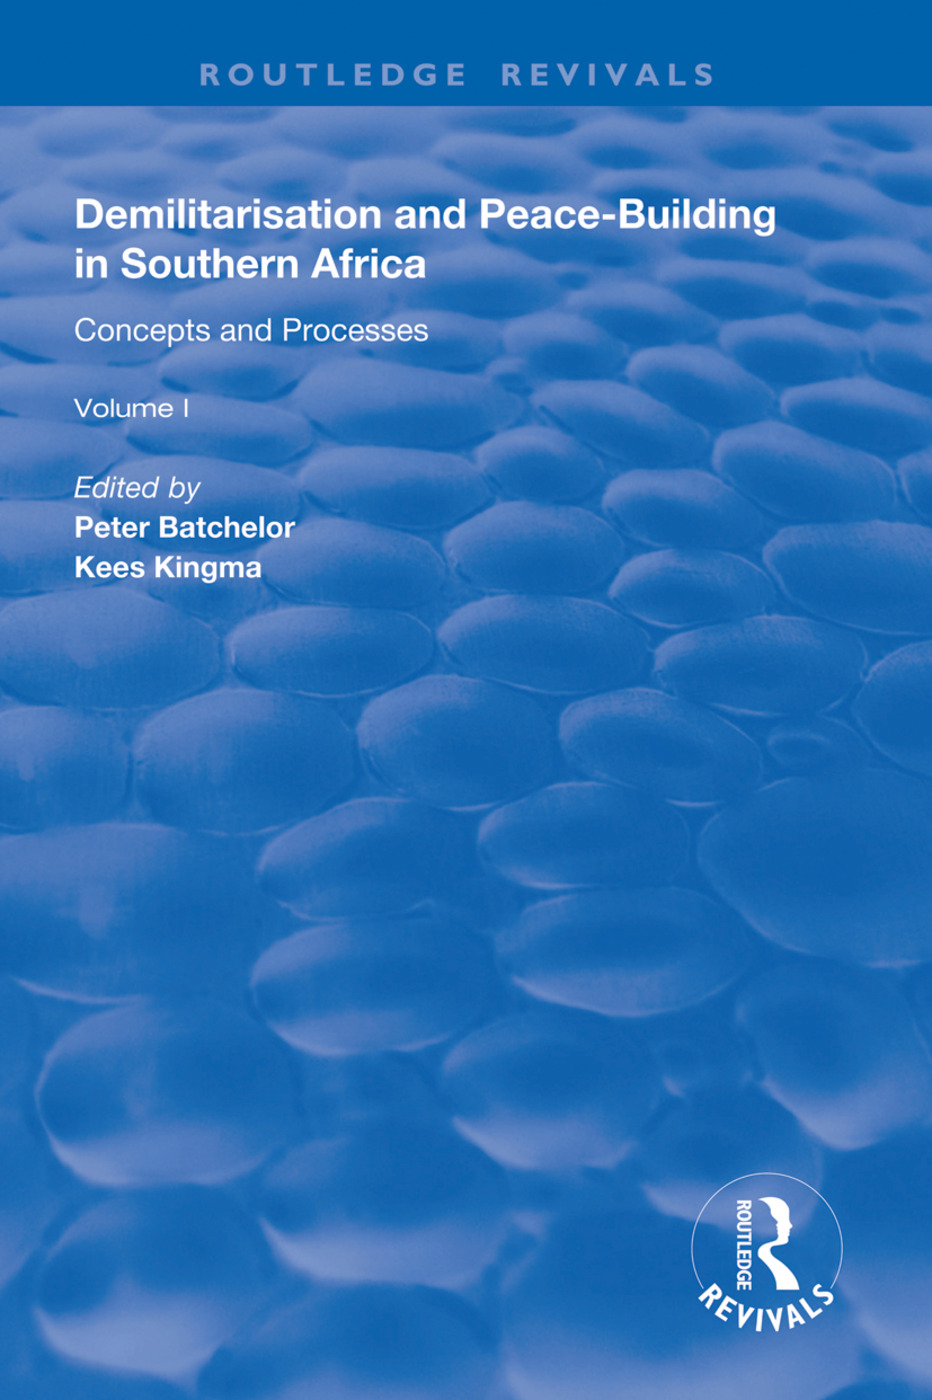 Demilitarisation and Peace-Building in Southern Africa: Volume I - Concepts and Processes book cover